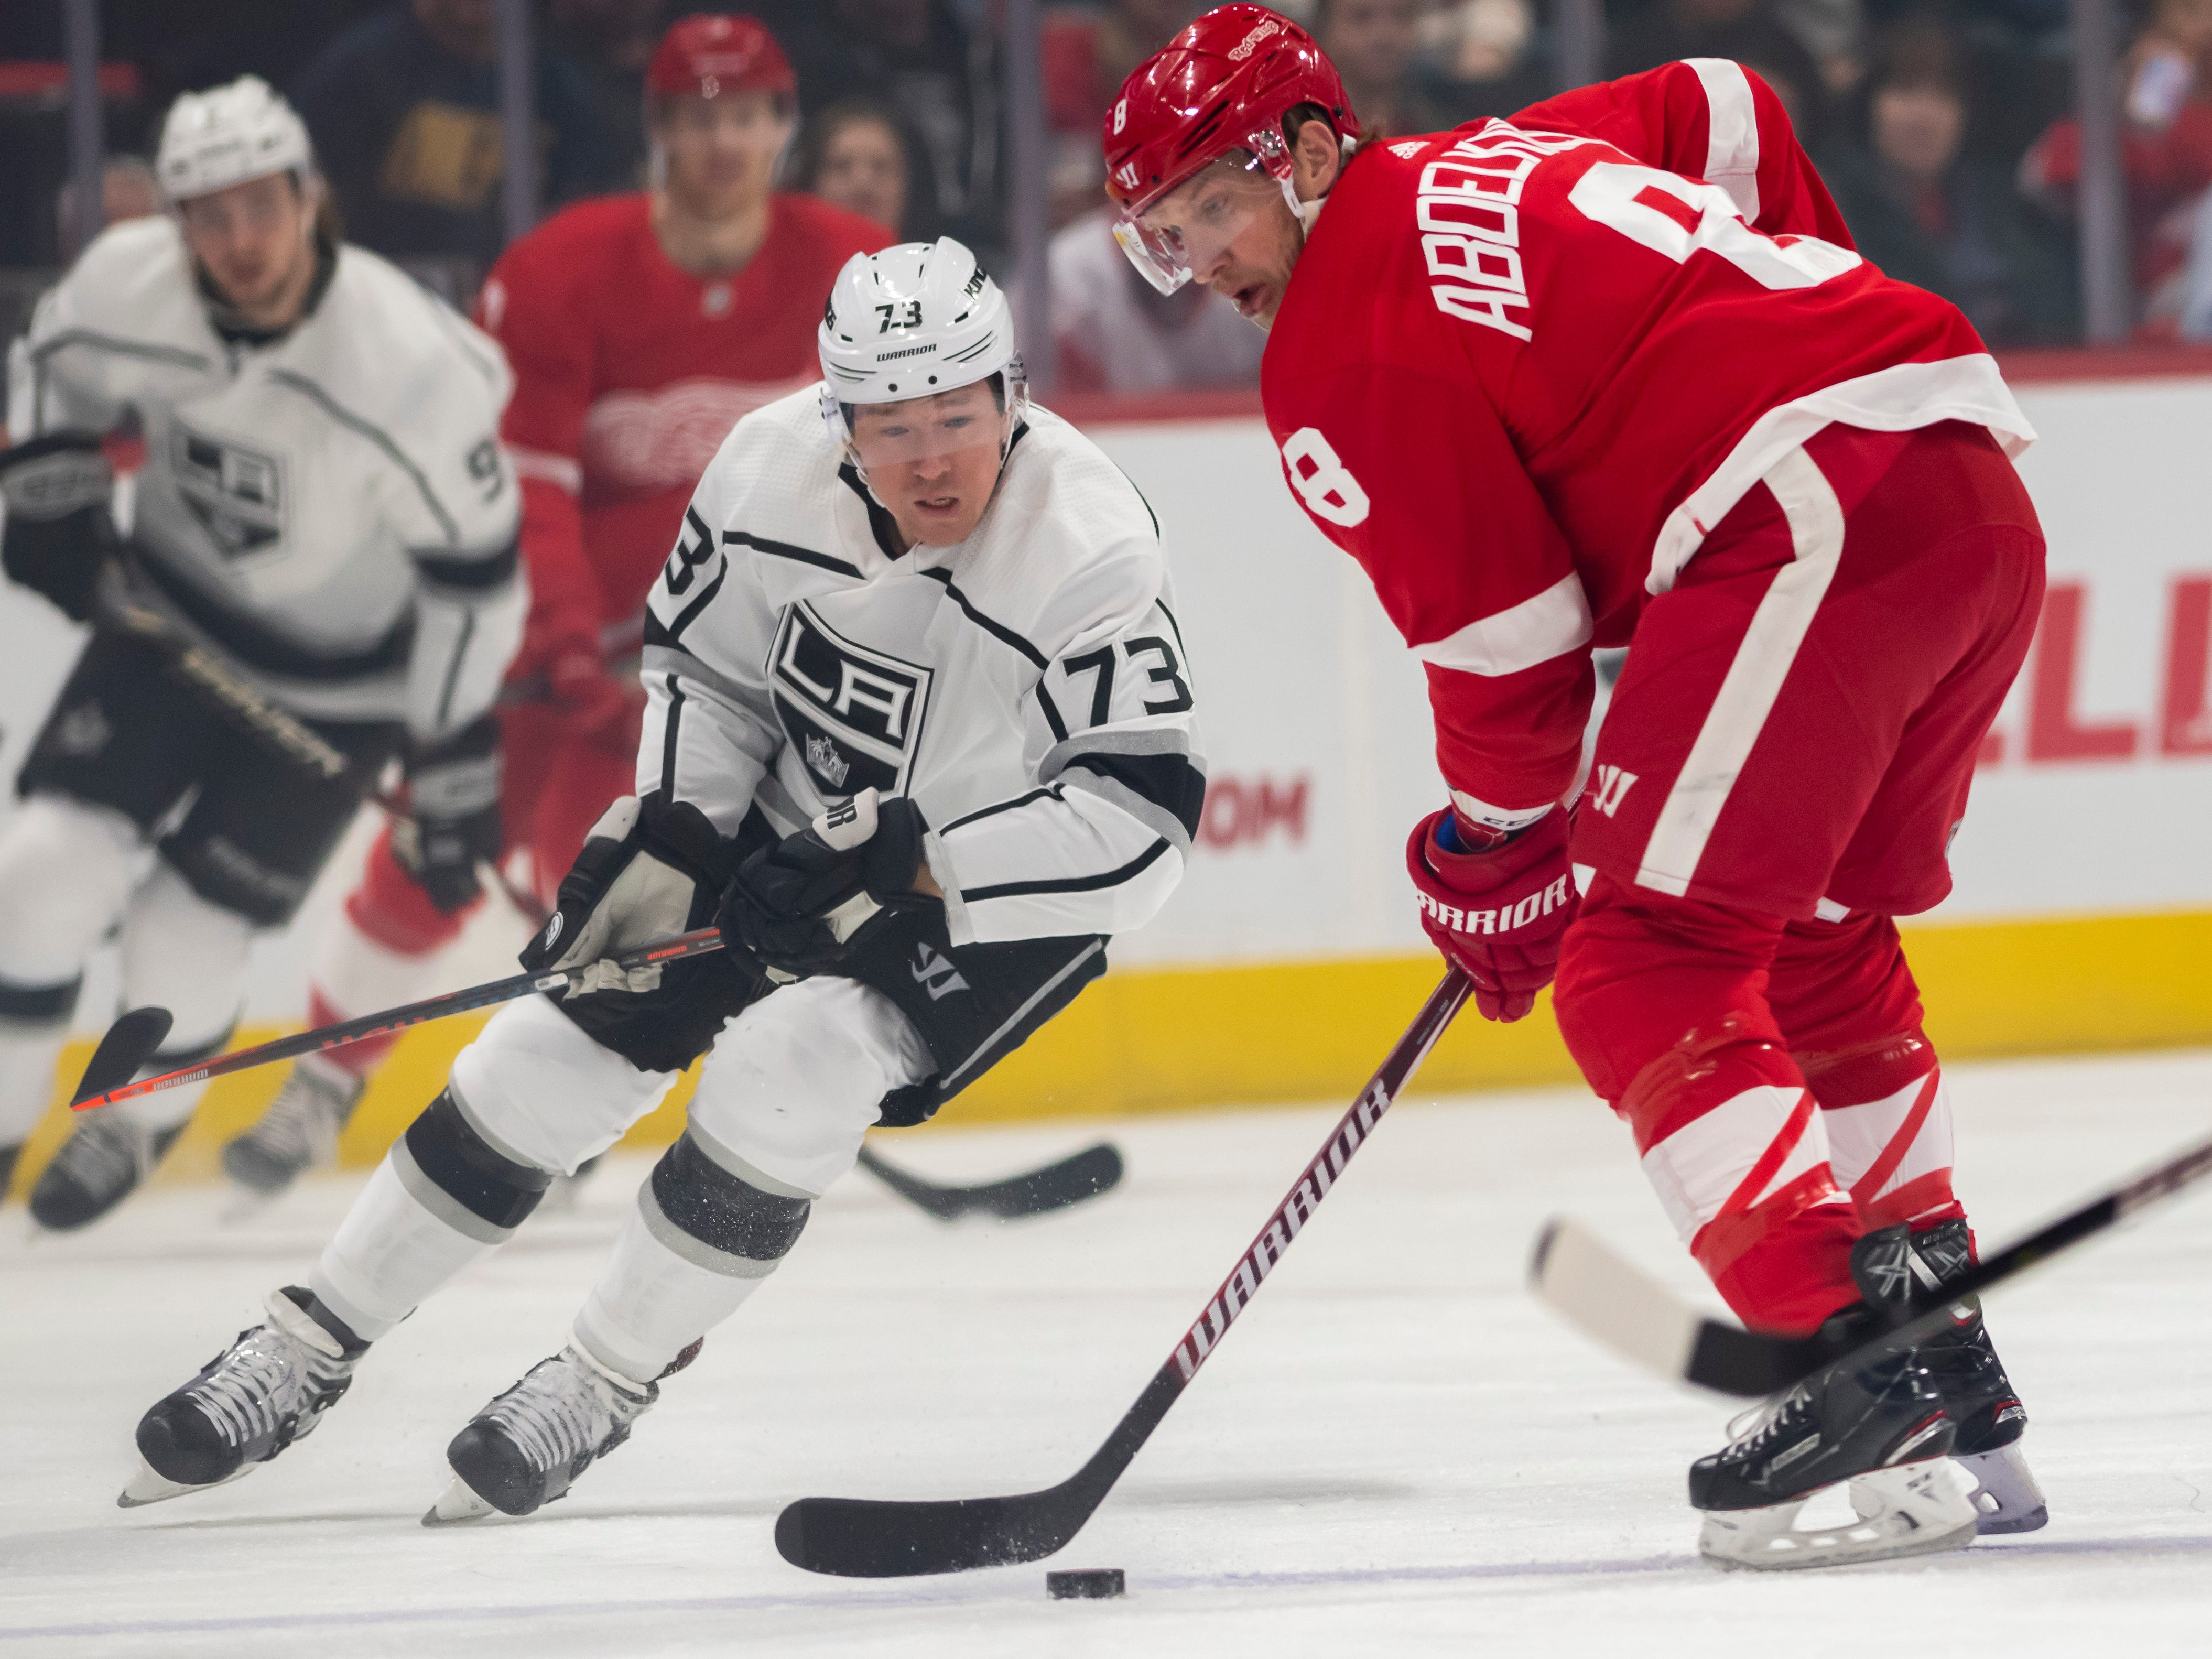 Detroit Red Wings left wing Justin Abdelkader keeps the puck away from Los Angeles Kings right wing Tyler Toffoli in the first period.